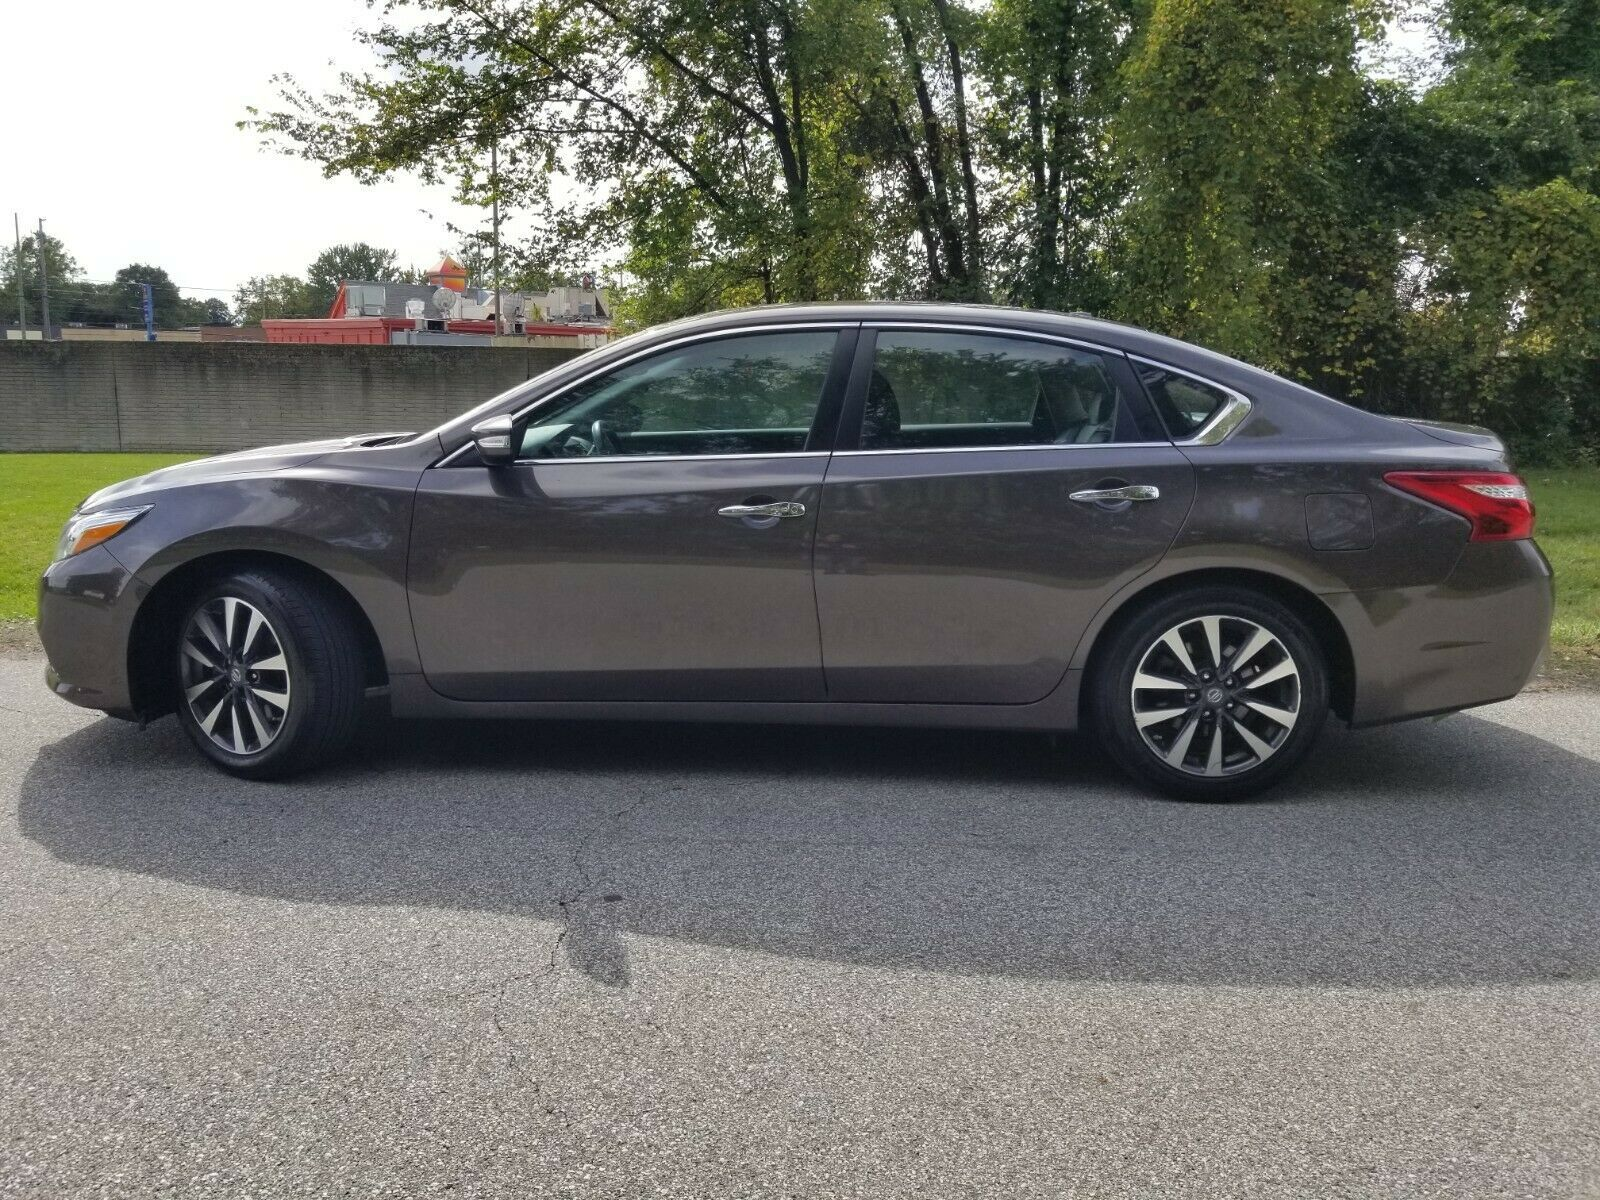 Used 2017 Nissan Altima 2 5 Sl 2017 Nissan Altima 2 5 Sl 2020 Is In Stock And For Sale Mycarboard Com 2017 Nissan Altima Nissan Altima Altima